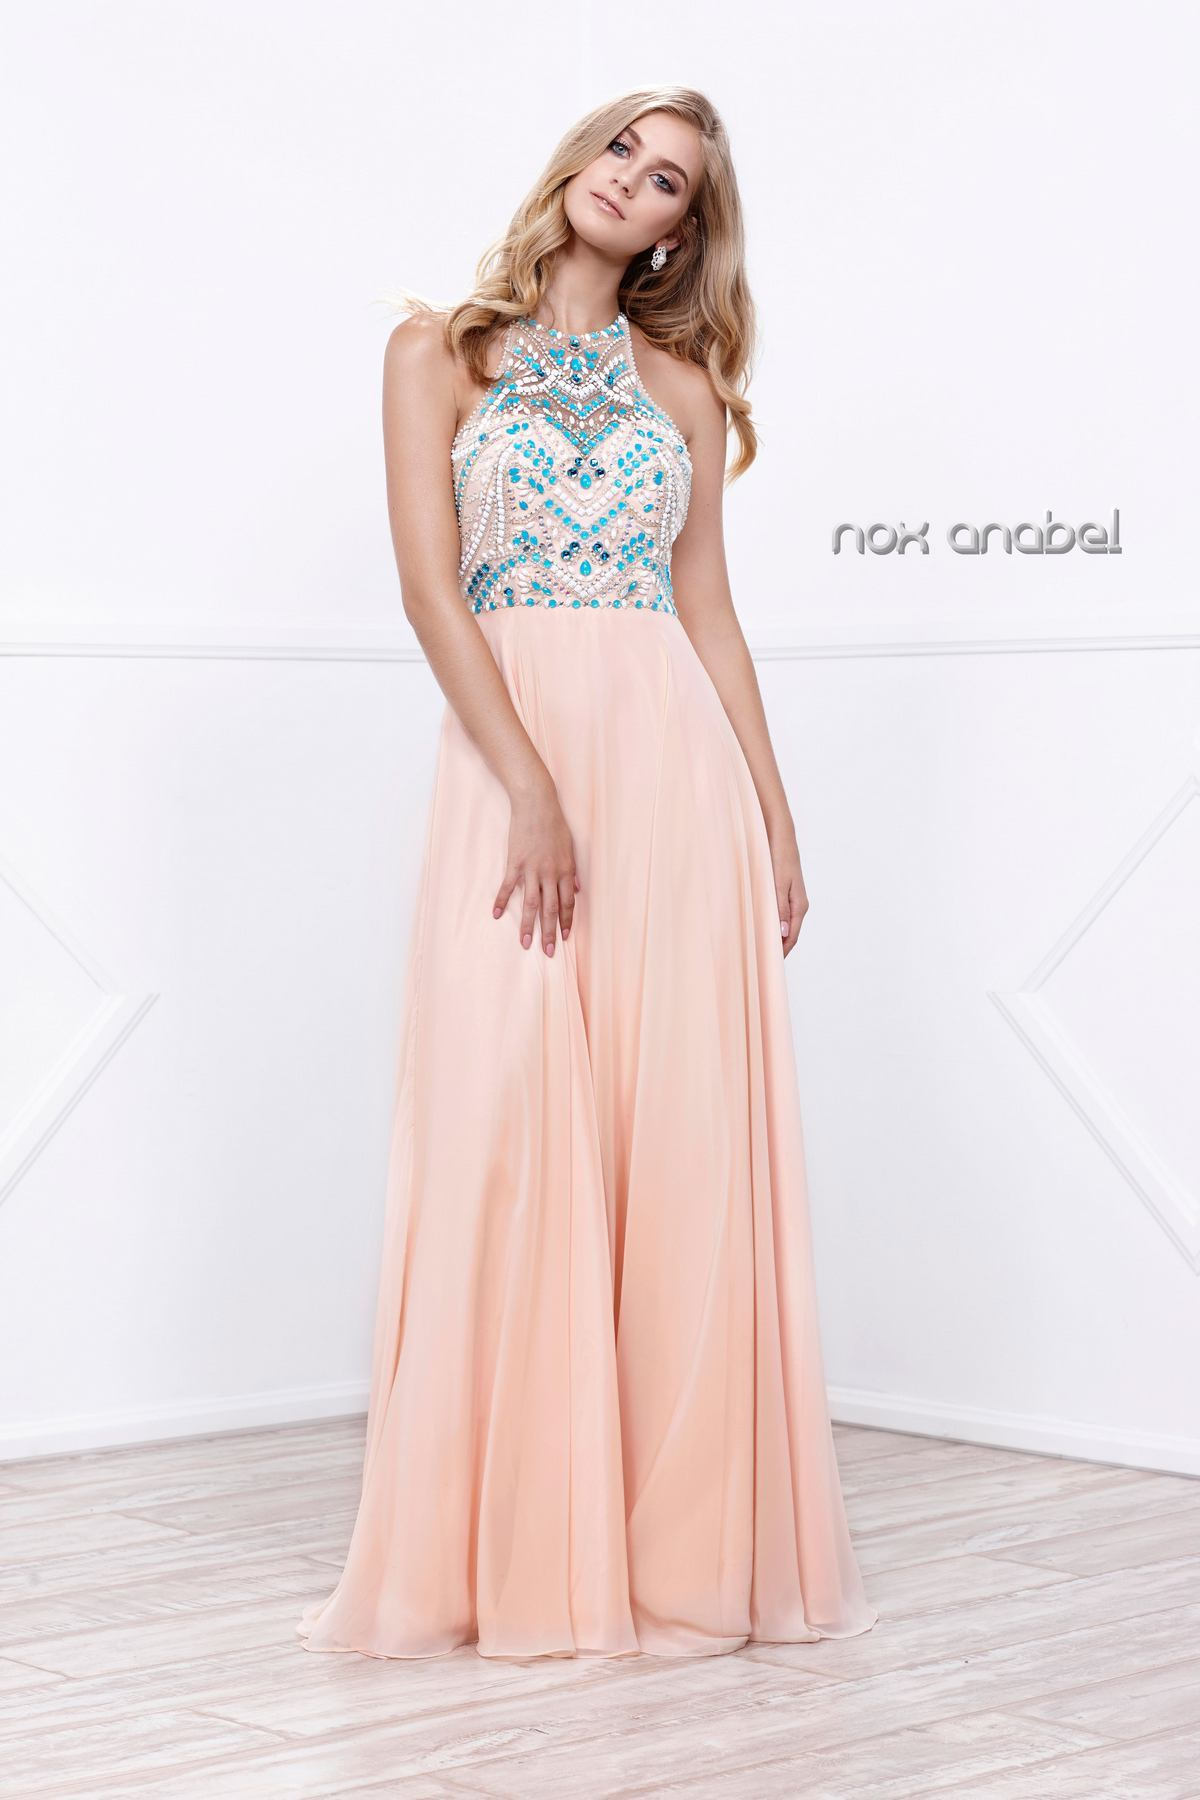 Sheer Halter Top Formal Gown with Chiffon Skirt | Prom Dresses ...